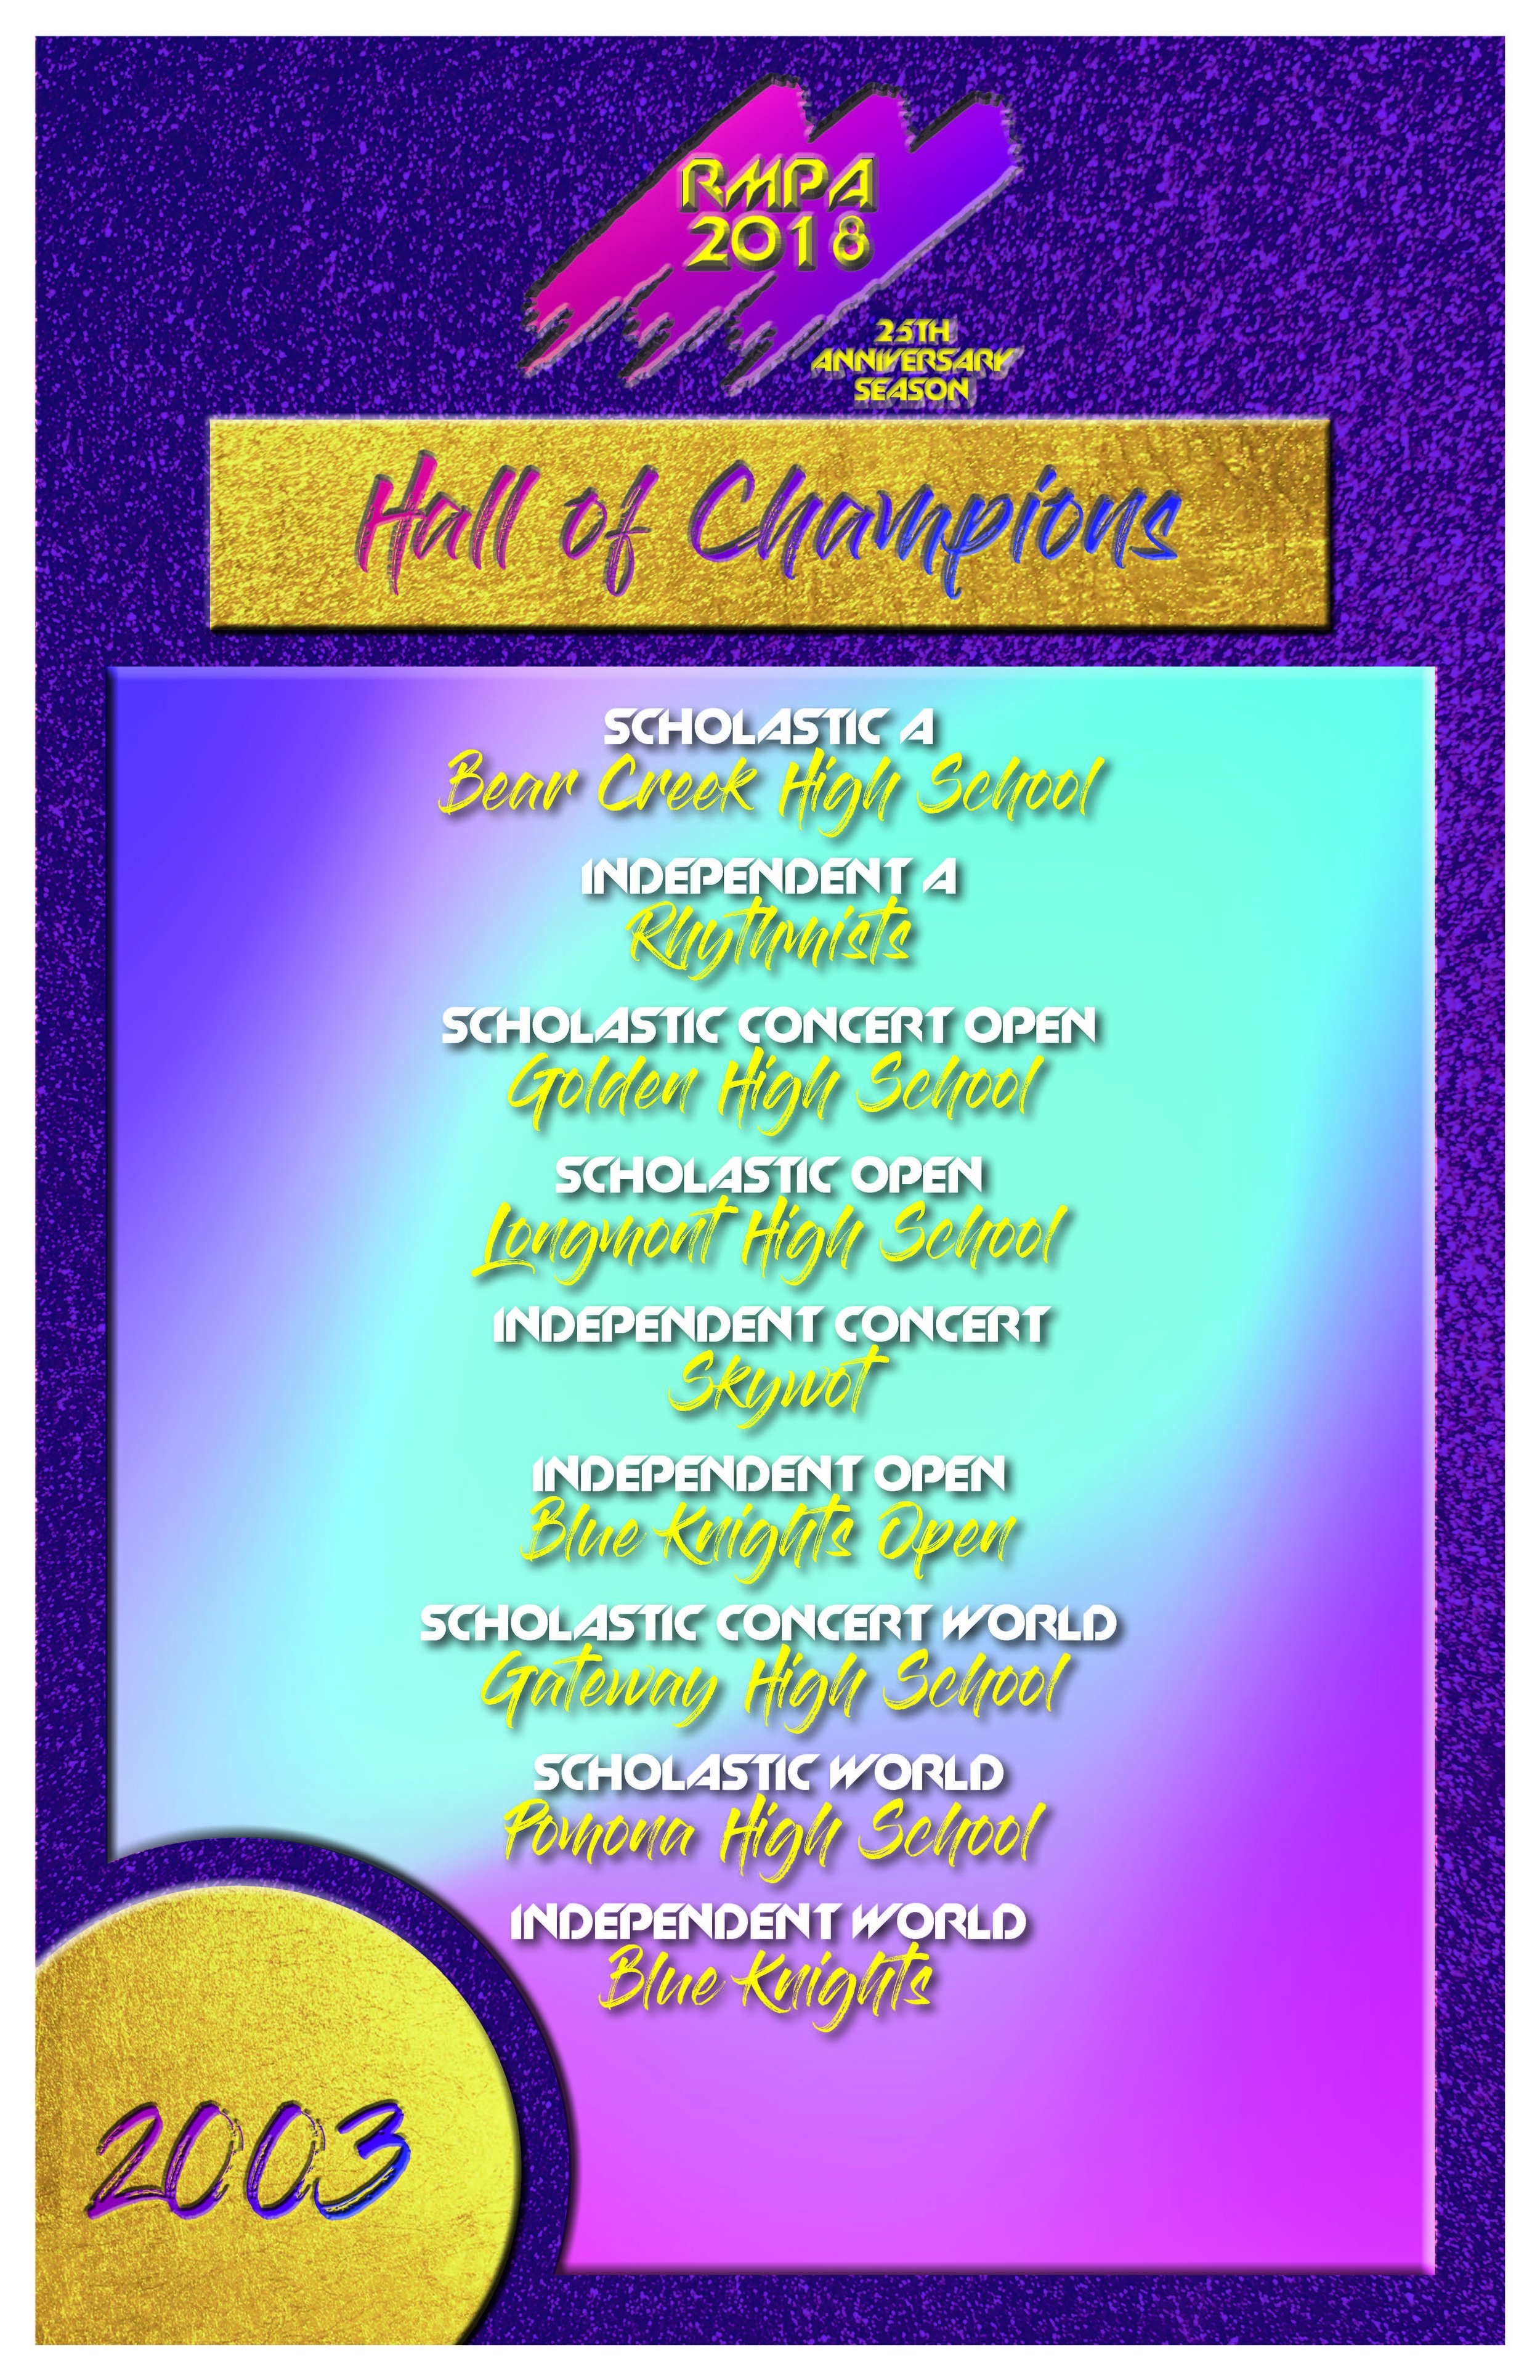 Hall of Champions Posters_Page_11.jpg